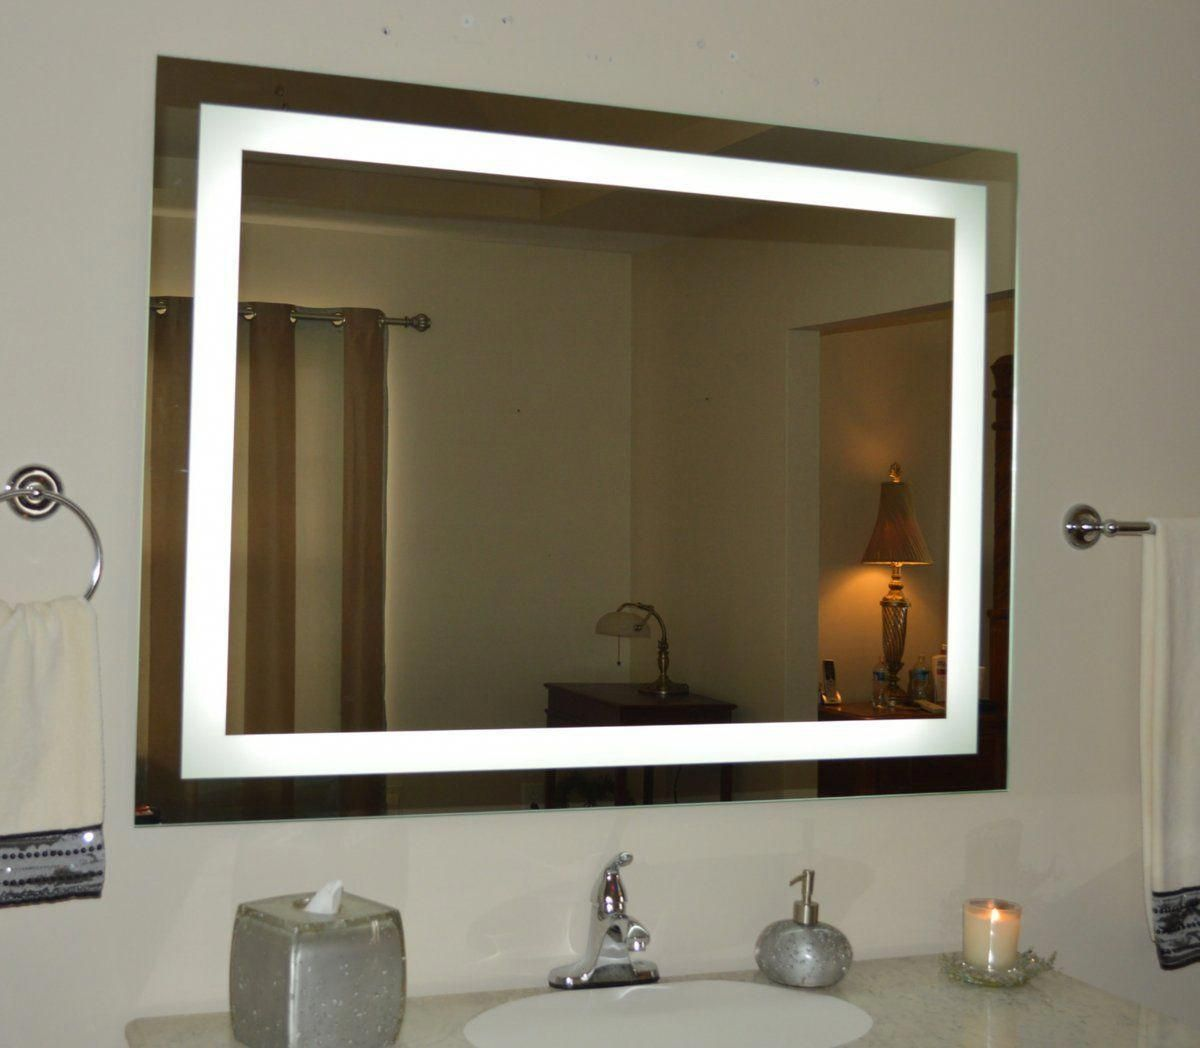 Front Lighted Led Bathroom Vanity Mirror 48 Wide X 36 Tall